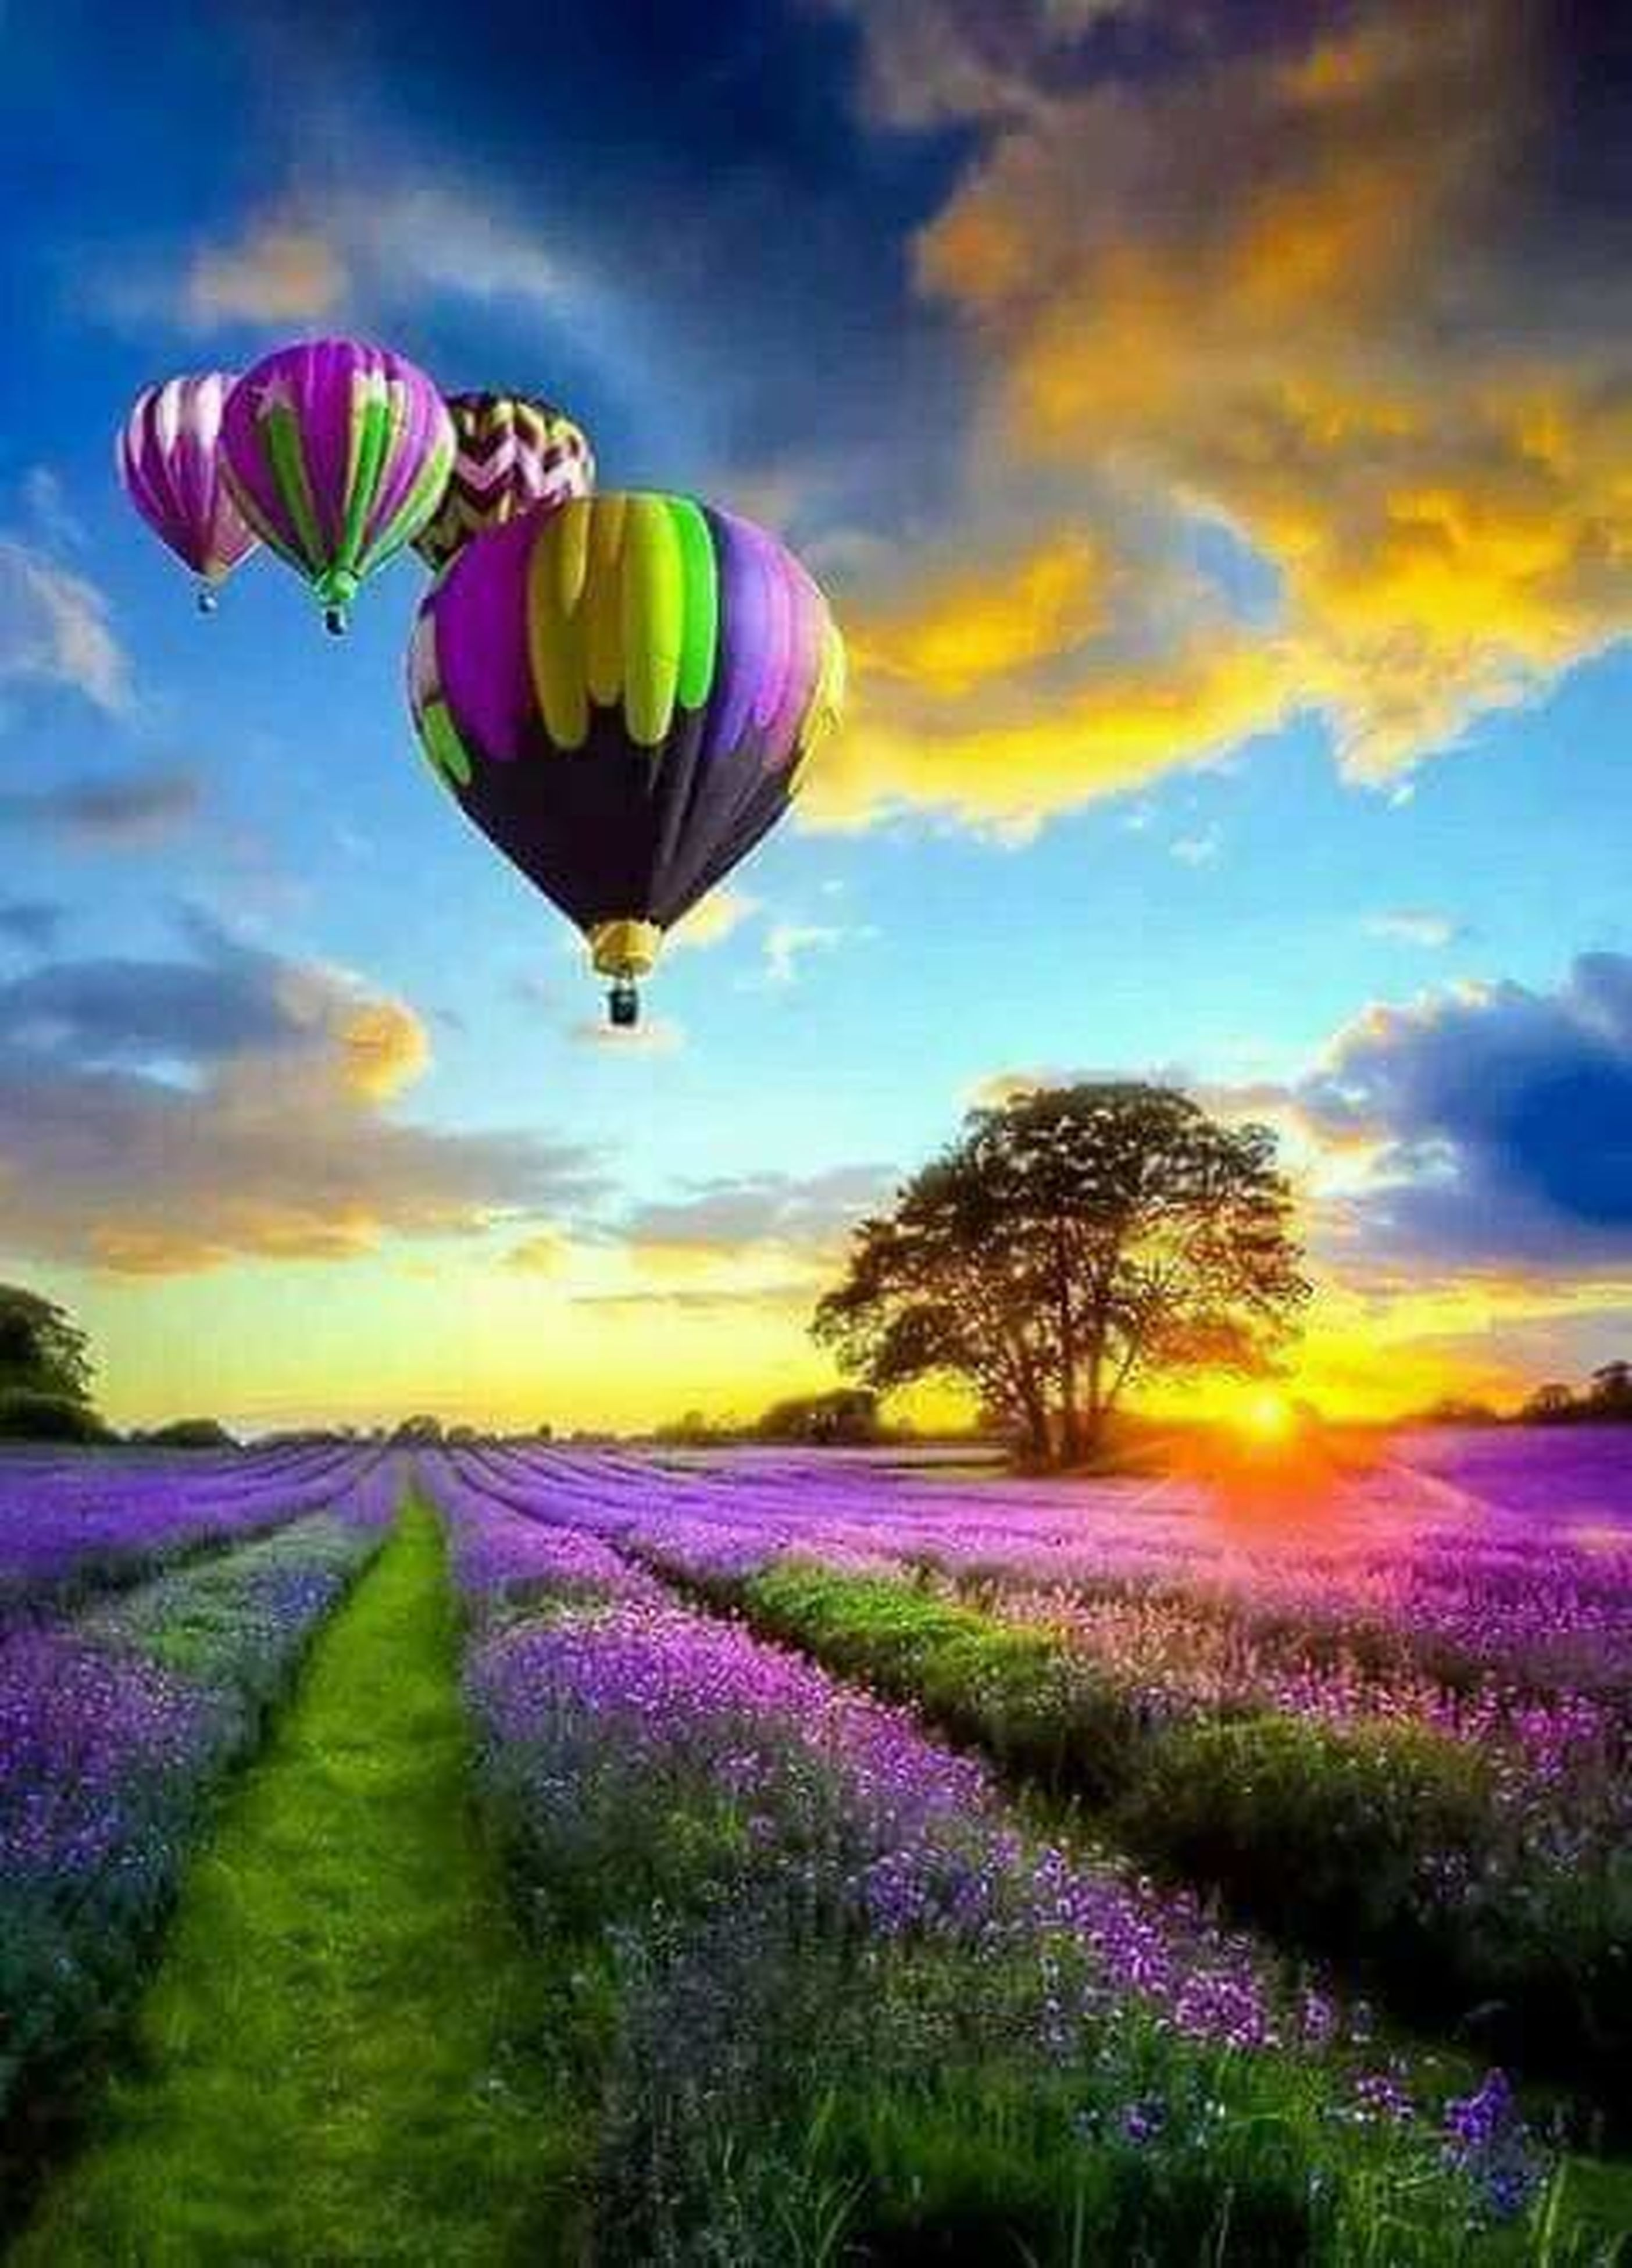 purple, flower, multi colored, cloud - sky, field, nature, sunset, sky, agriculture, beauty in nature, rural scene, scenics, outdoors, hot air balloon, dramatic sky, plant, landscape, tranquil scene, summer, sunlight, growth, no people, flying, springtime, grass, day, flower head